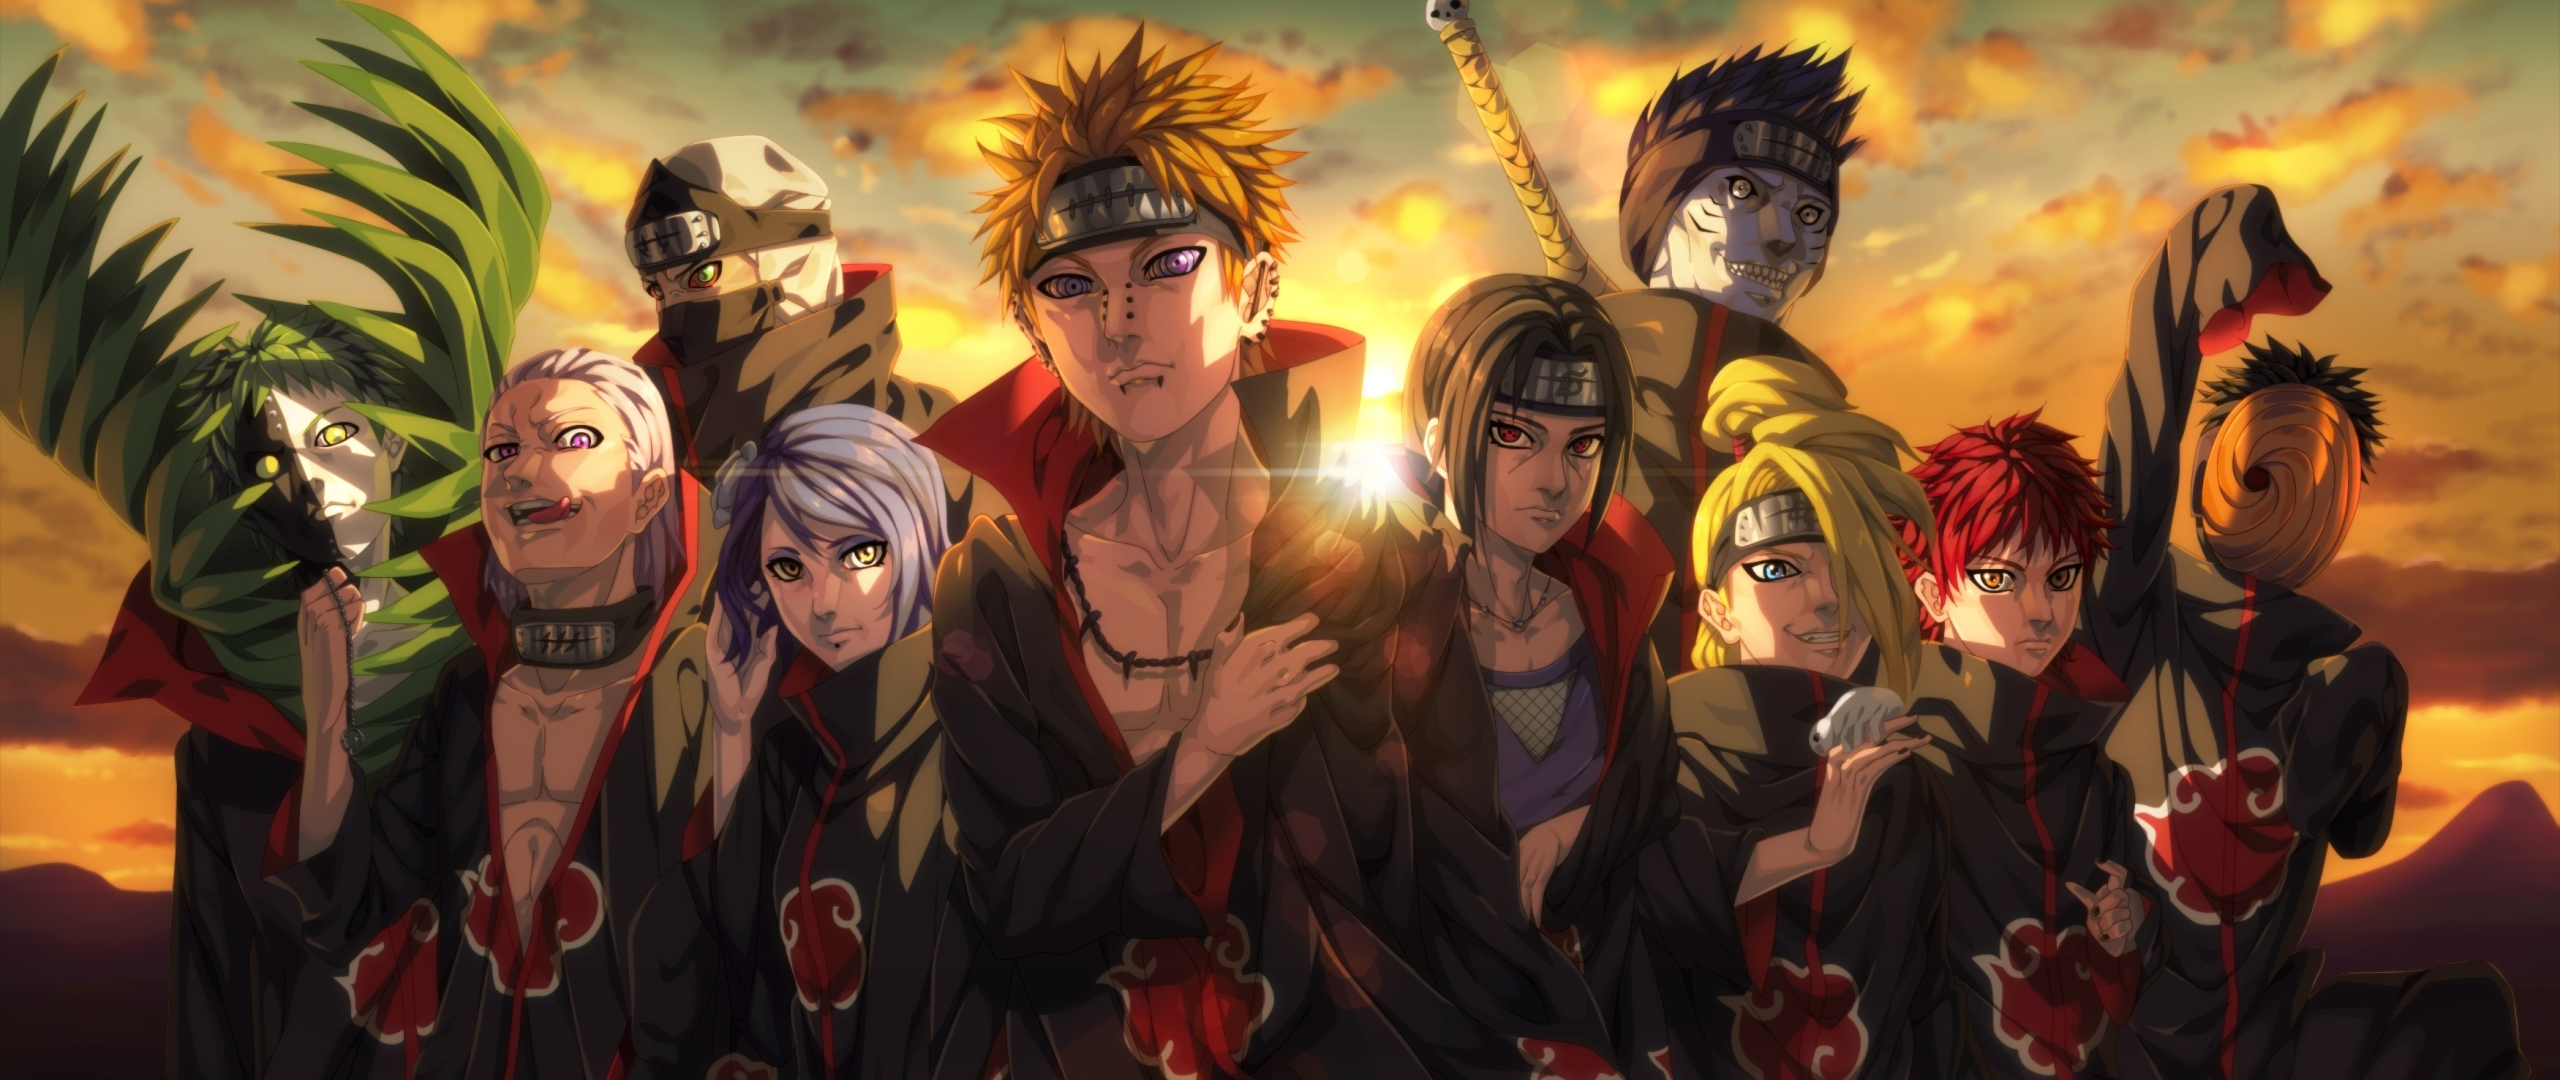 2560x1080 Akatsuki Organization Anime 2560x1080 Resolution Wallpaper Hd Anime 4k Wallpapers Images Photos And Background